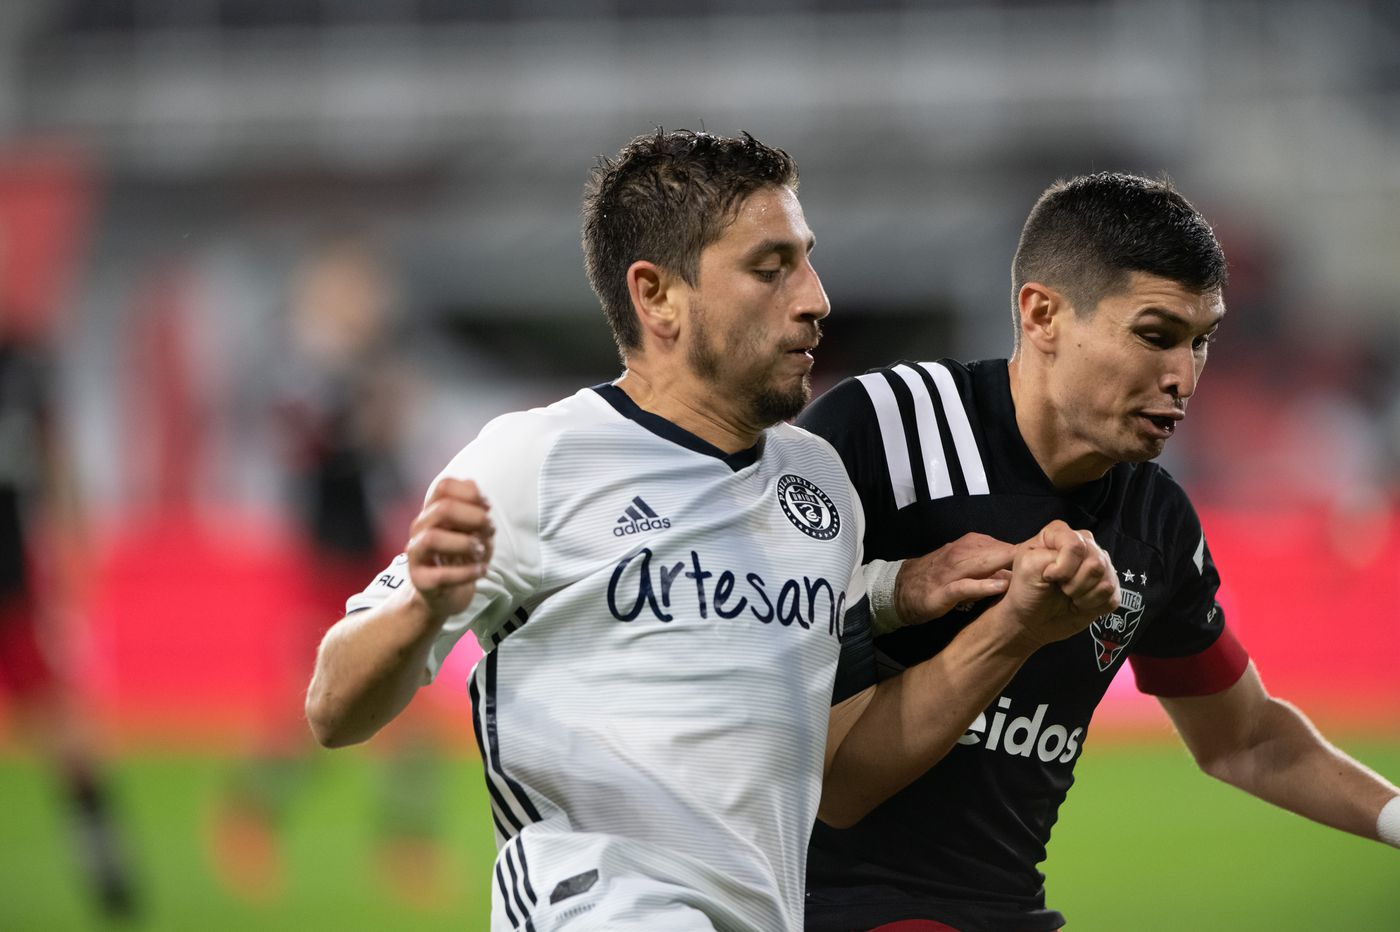 Alejandro Bedoya and Kacper Przybylko stood out in the Union's tie at D.C., and not always for good reasons